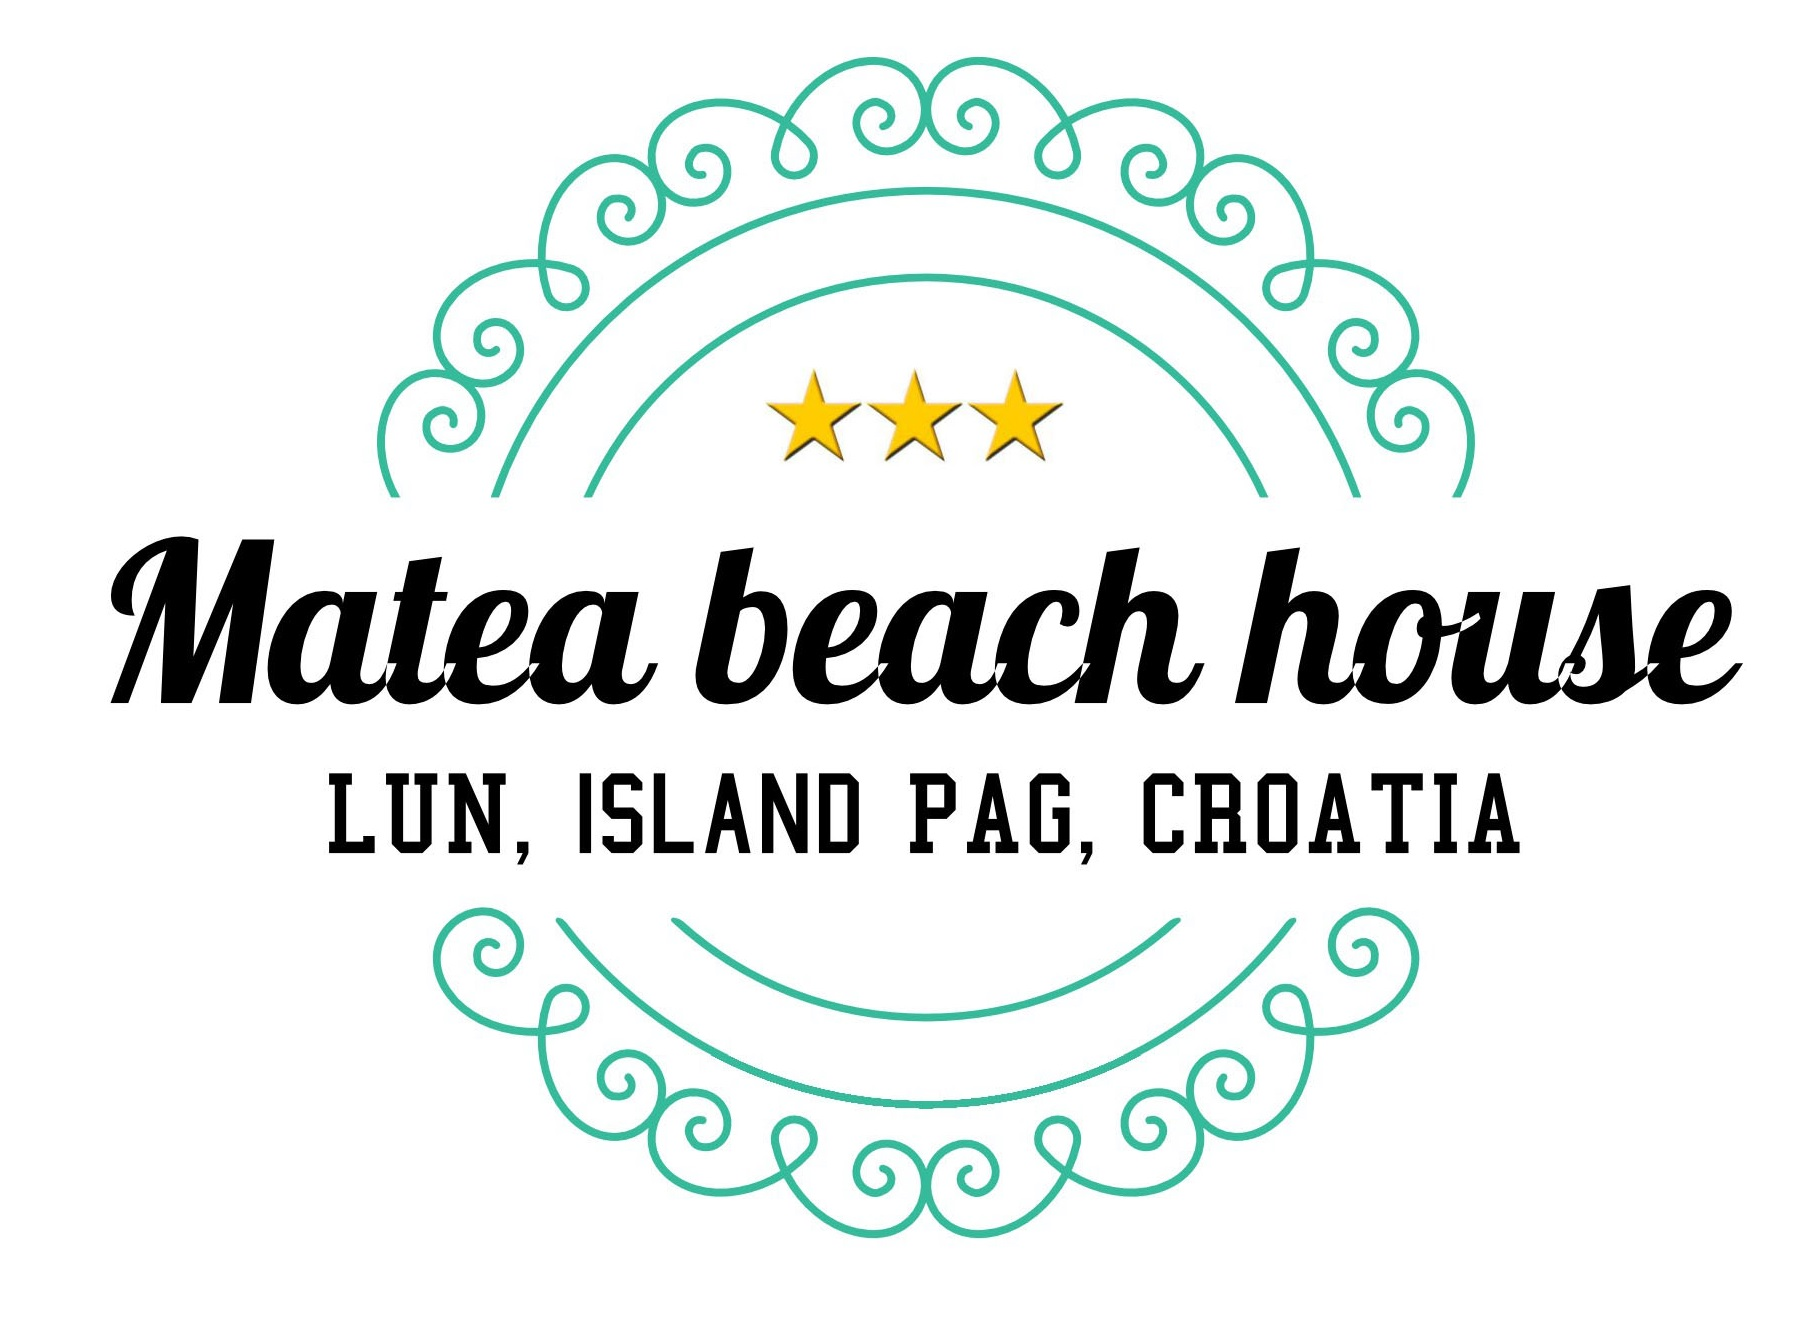 Matea beach house